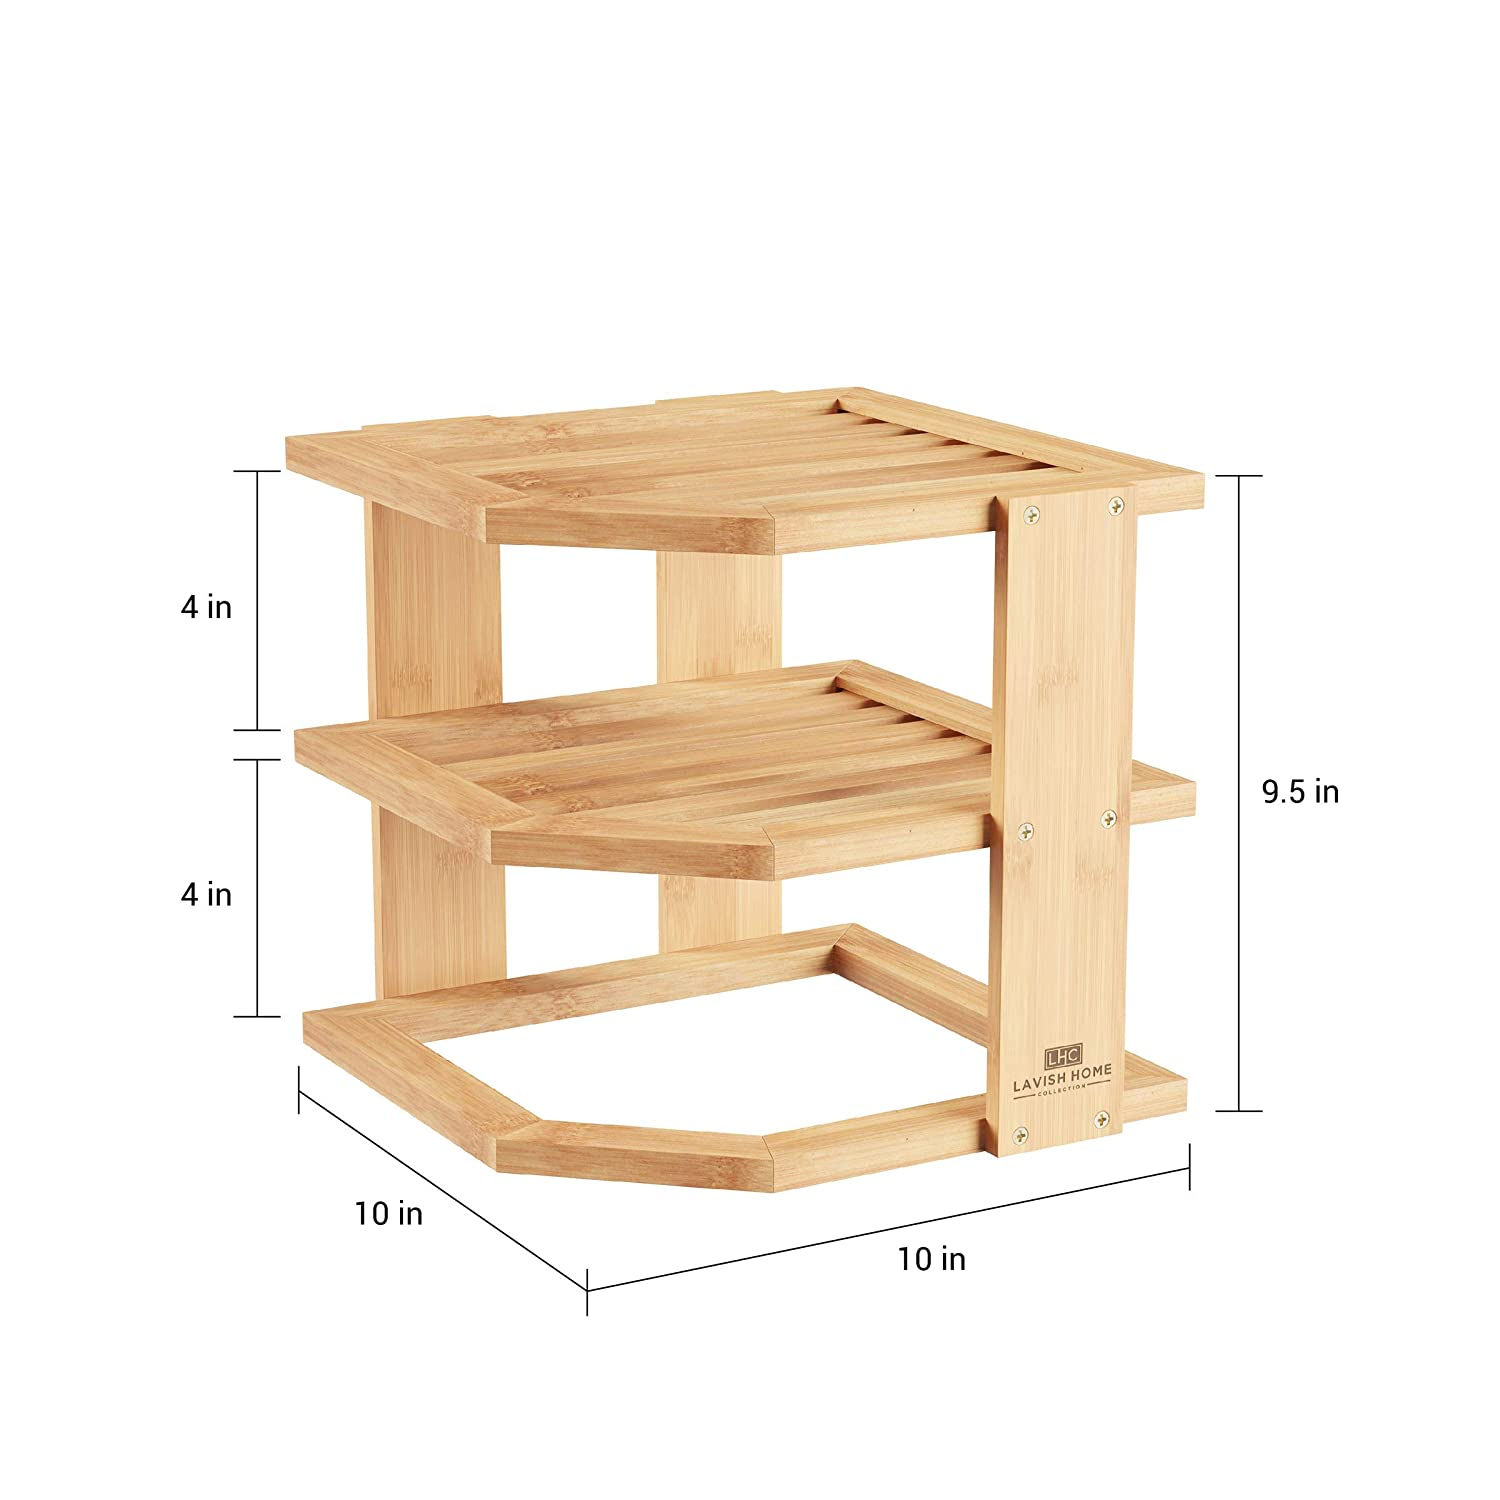 Natural Wood Space Saving Rack Lavish Home 2-Tier Bamboo Corner Shelf for Kitchen or Bathroom Cabinet Countertop Cupboard Storage and Organizer